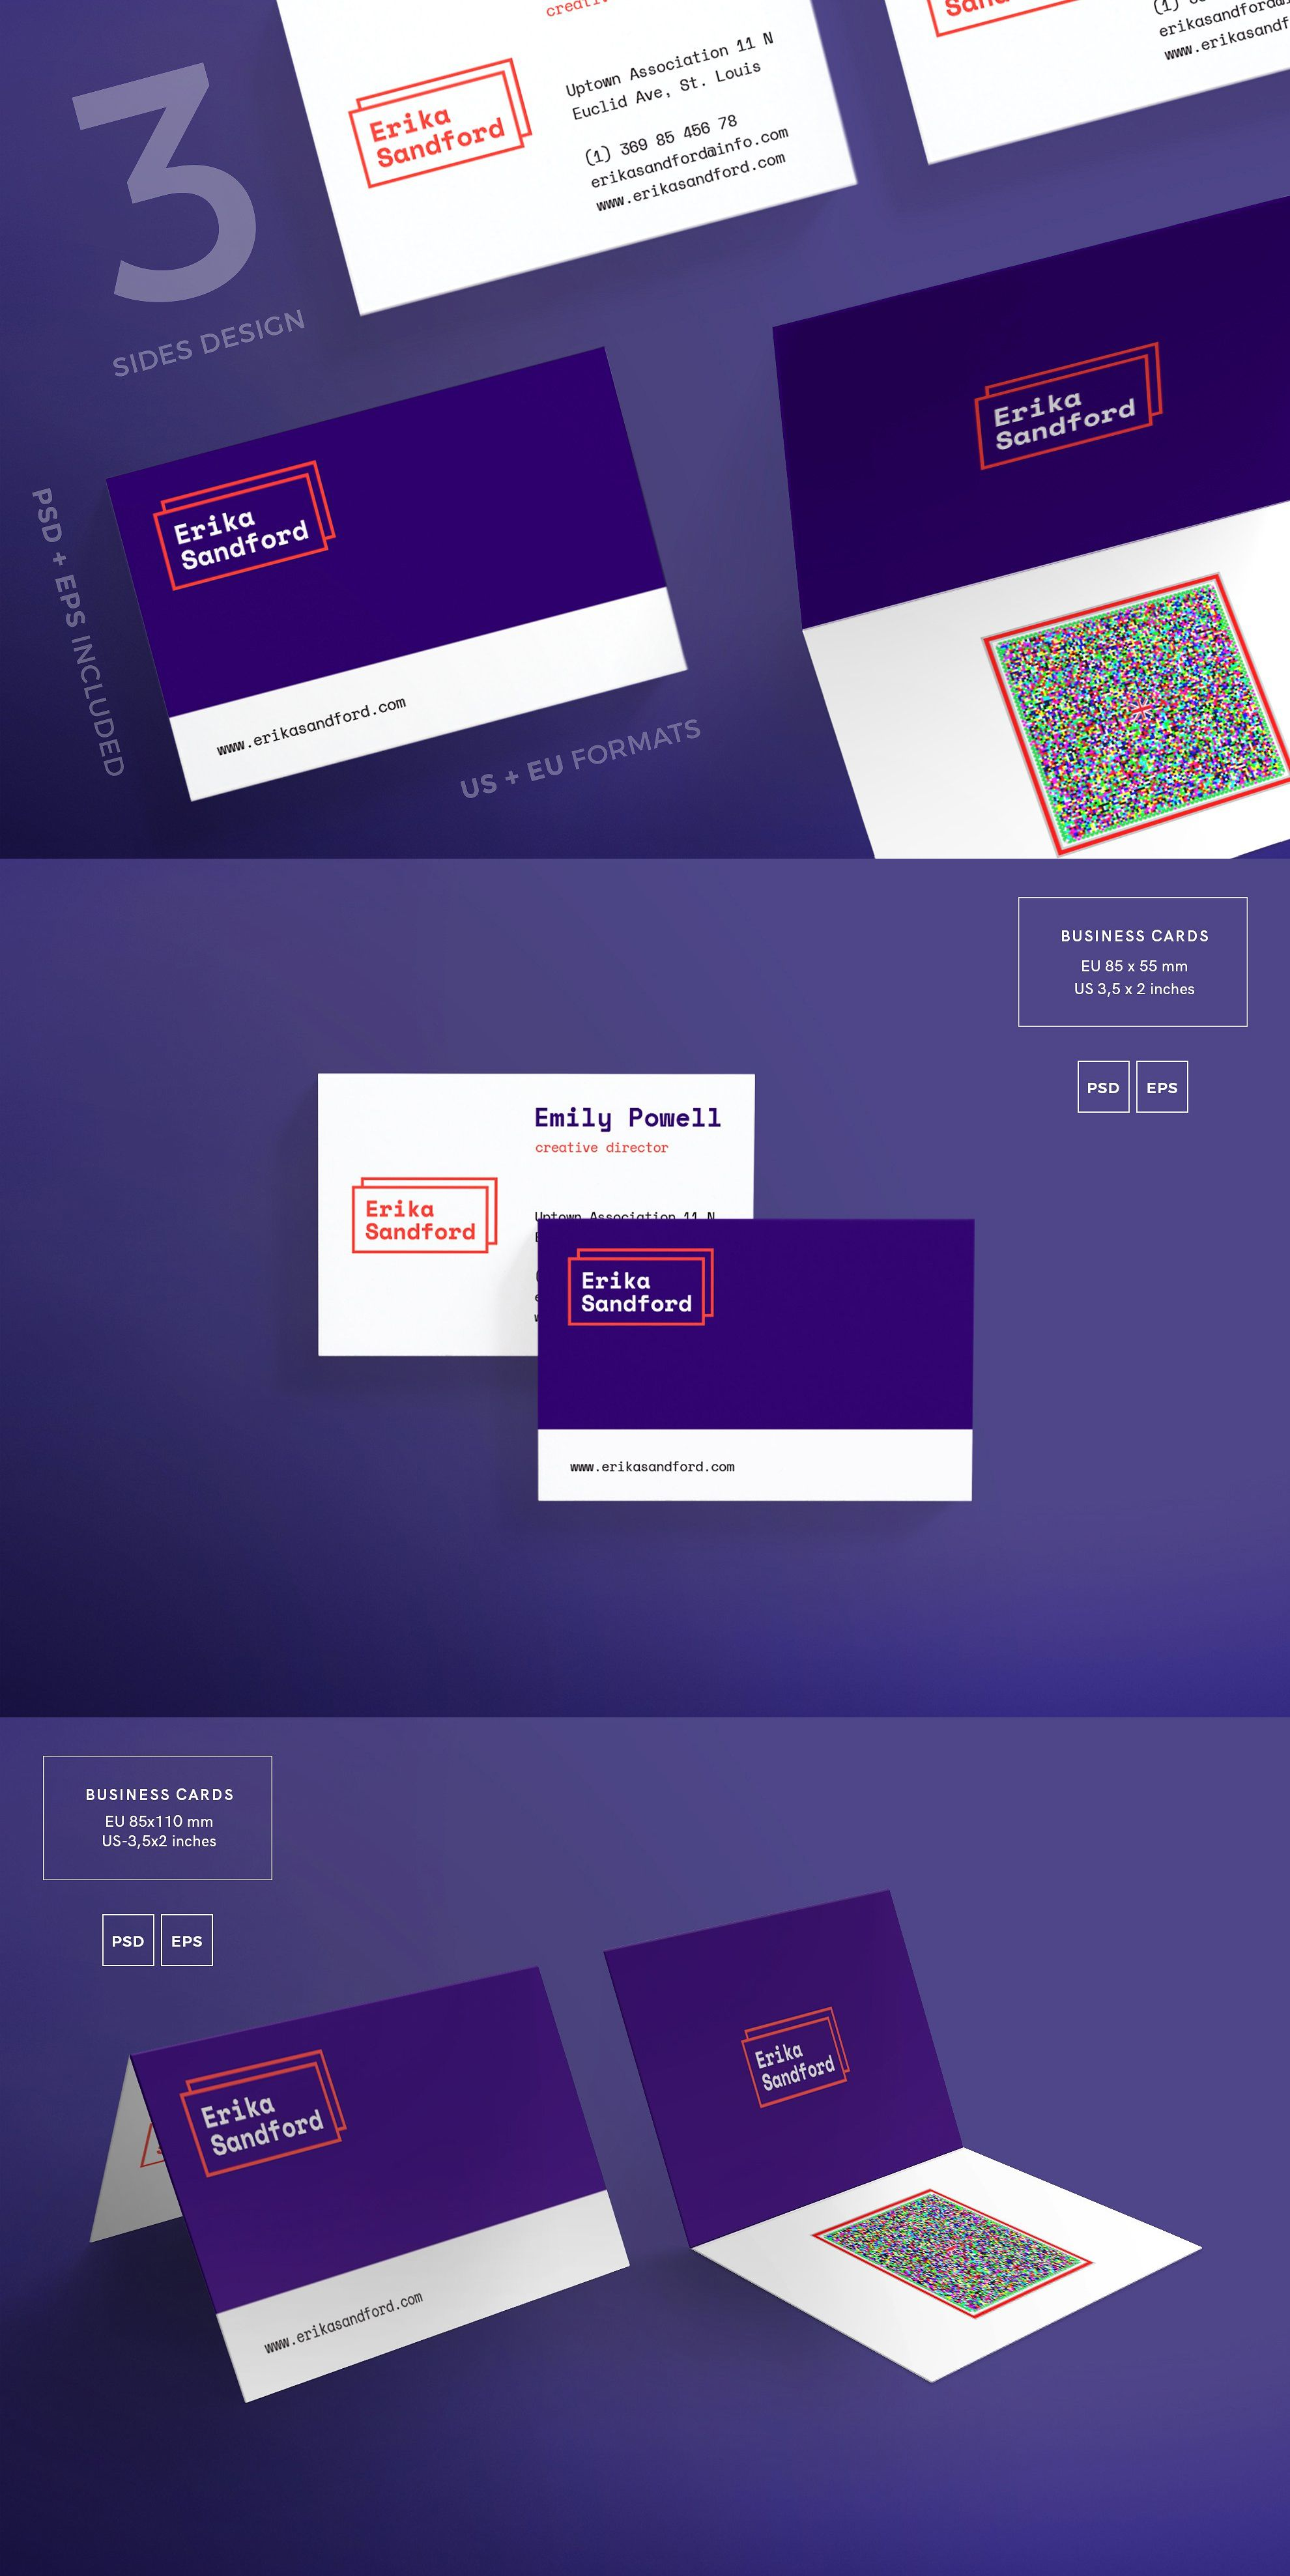 Business cards fashion style business cards card templates business cards template fashion style psd eps accmission Gallery